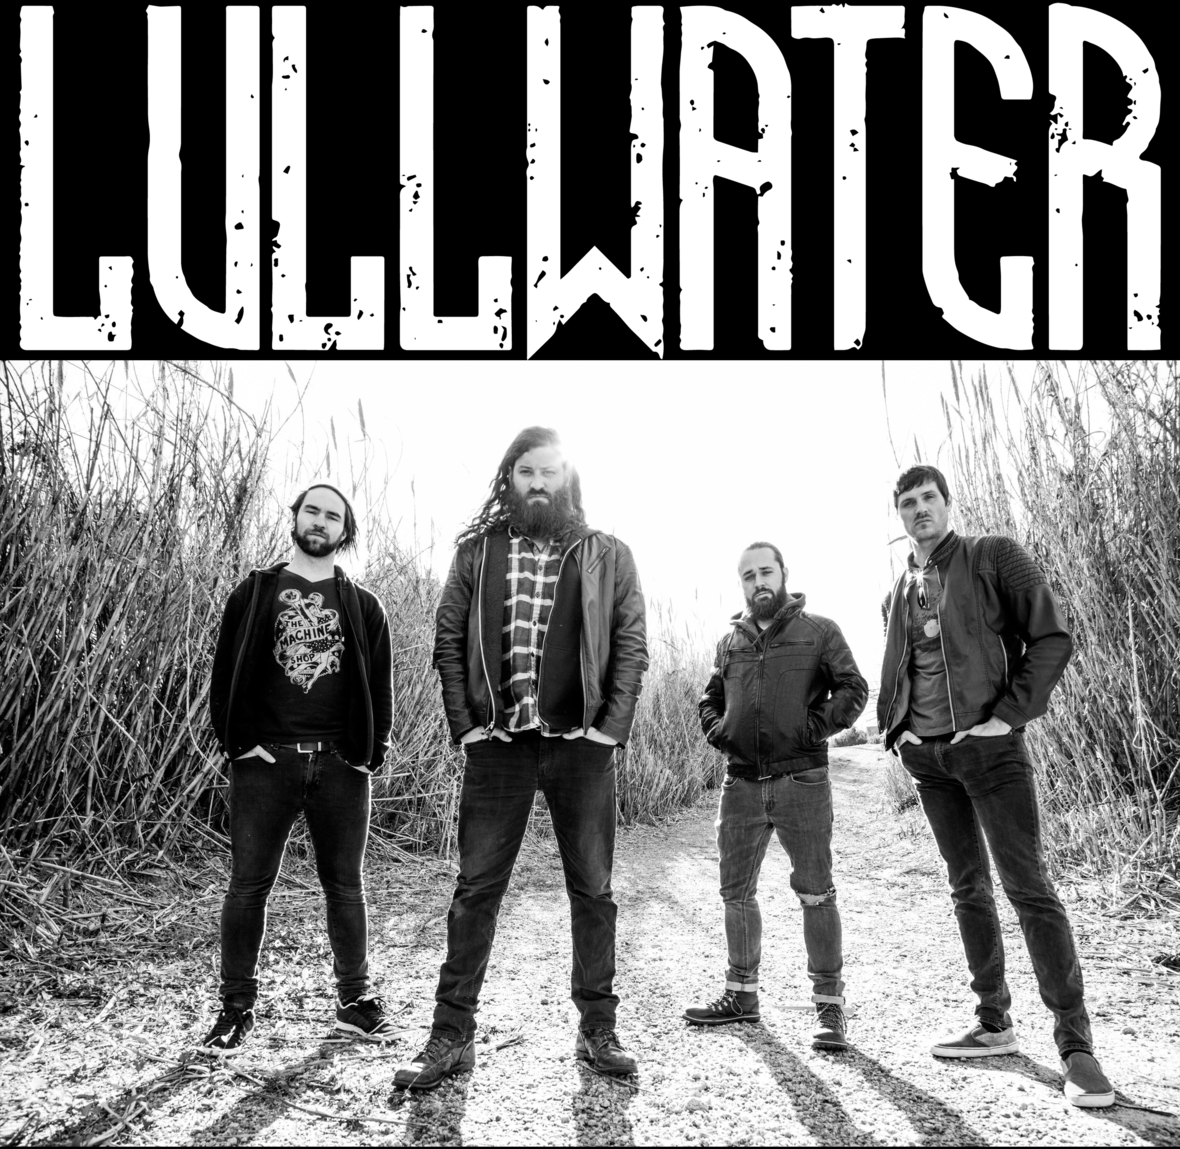 LULLWATER Release Highly Anticipated LP, 'Voodoo'!